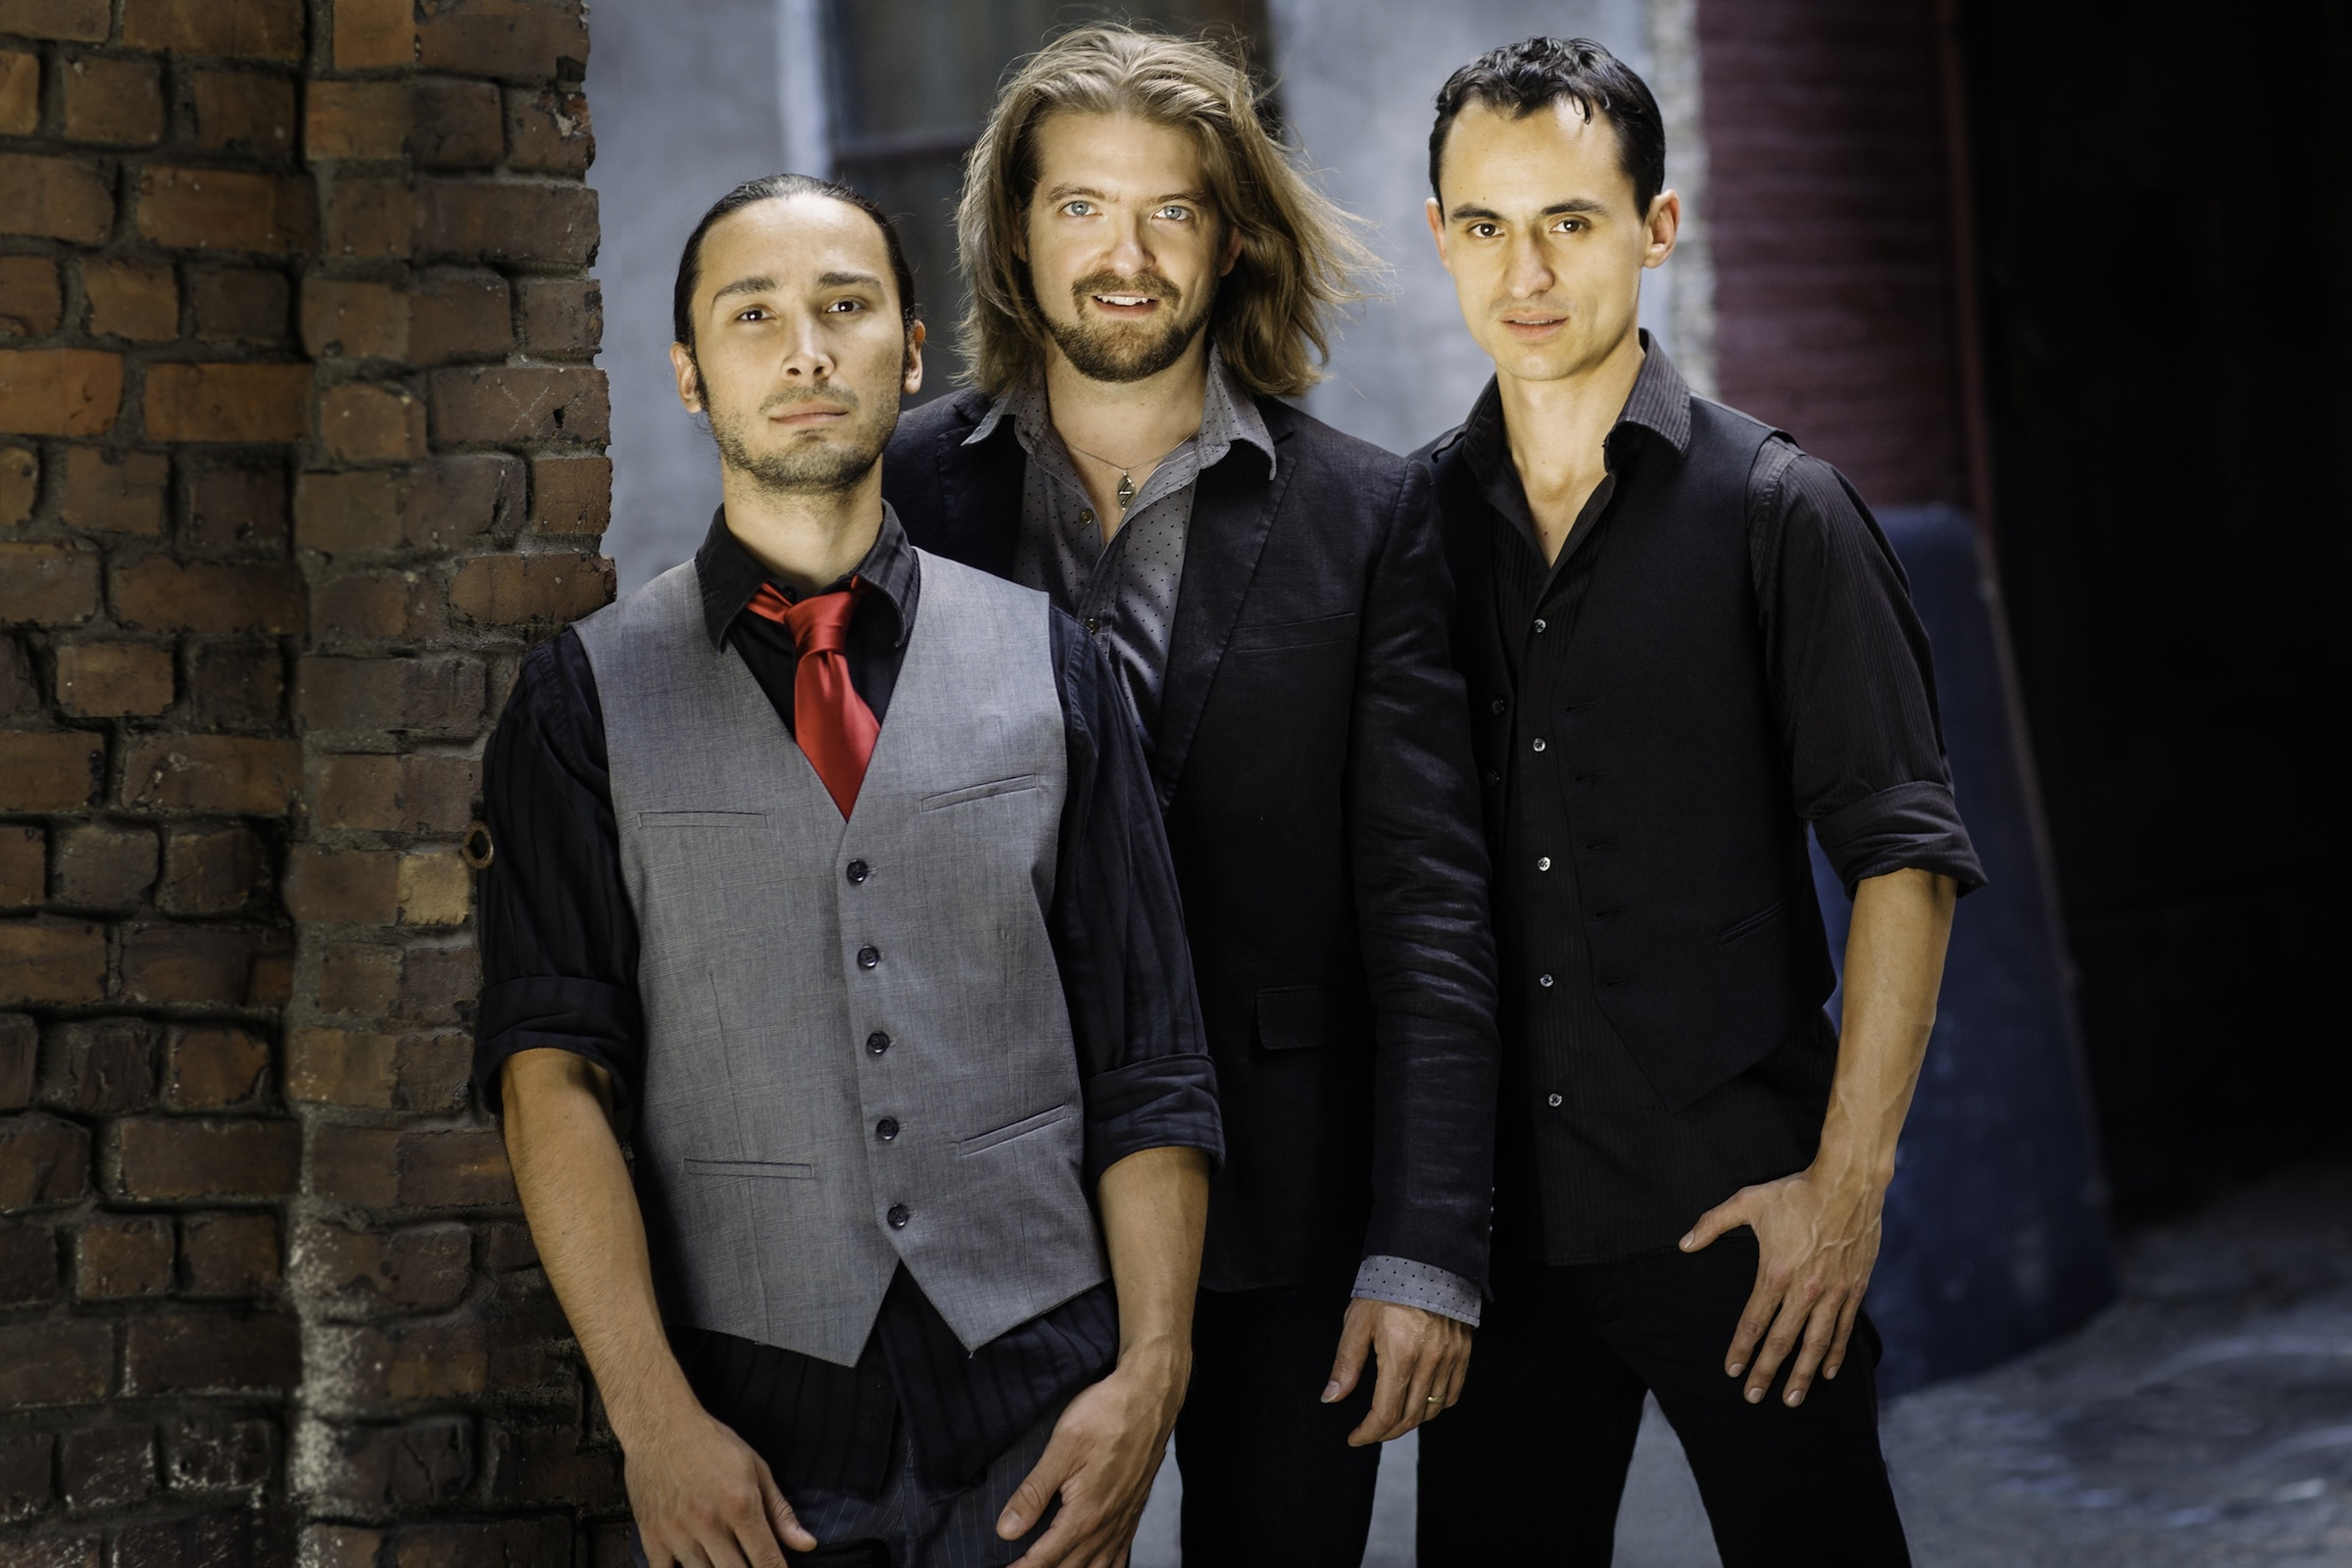 Juanito Pascual and the New Flamenco Trio